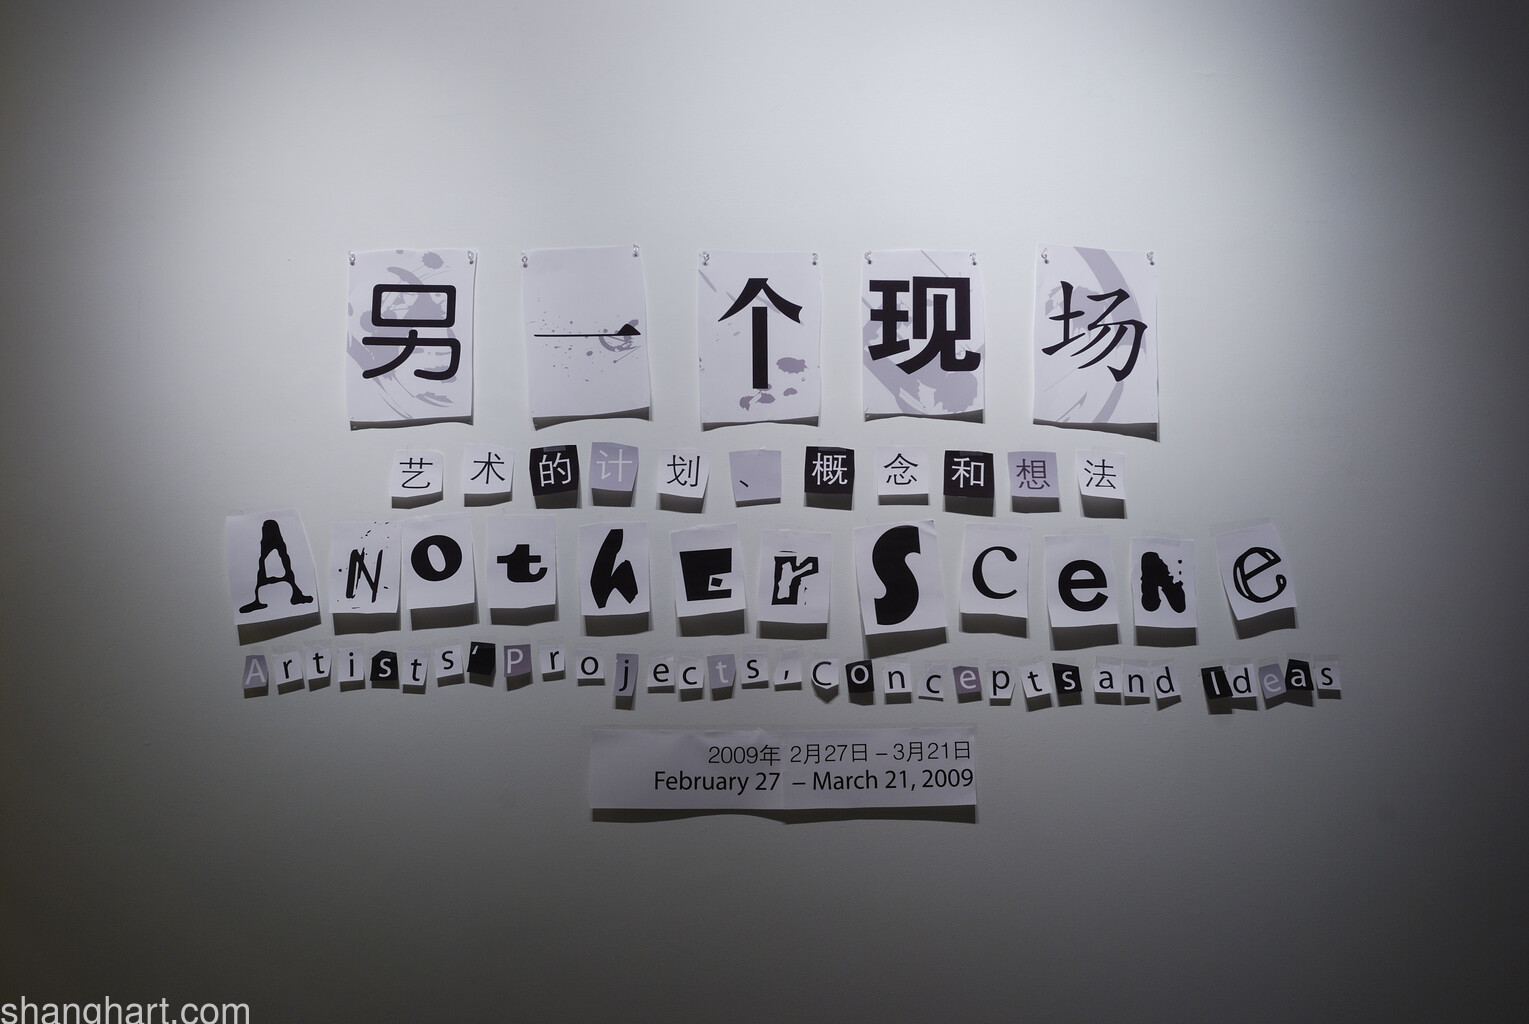 The Title of the exhibition